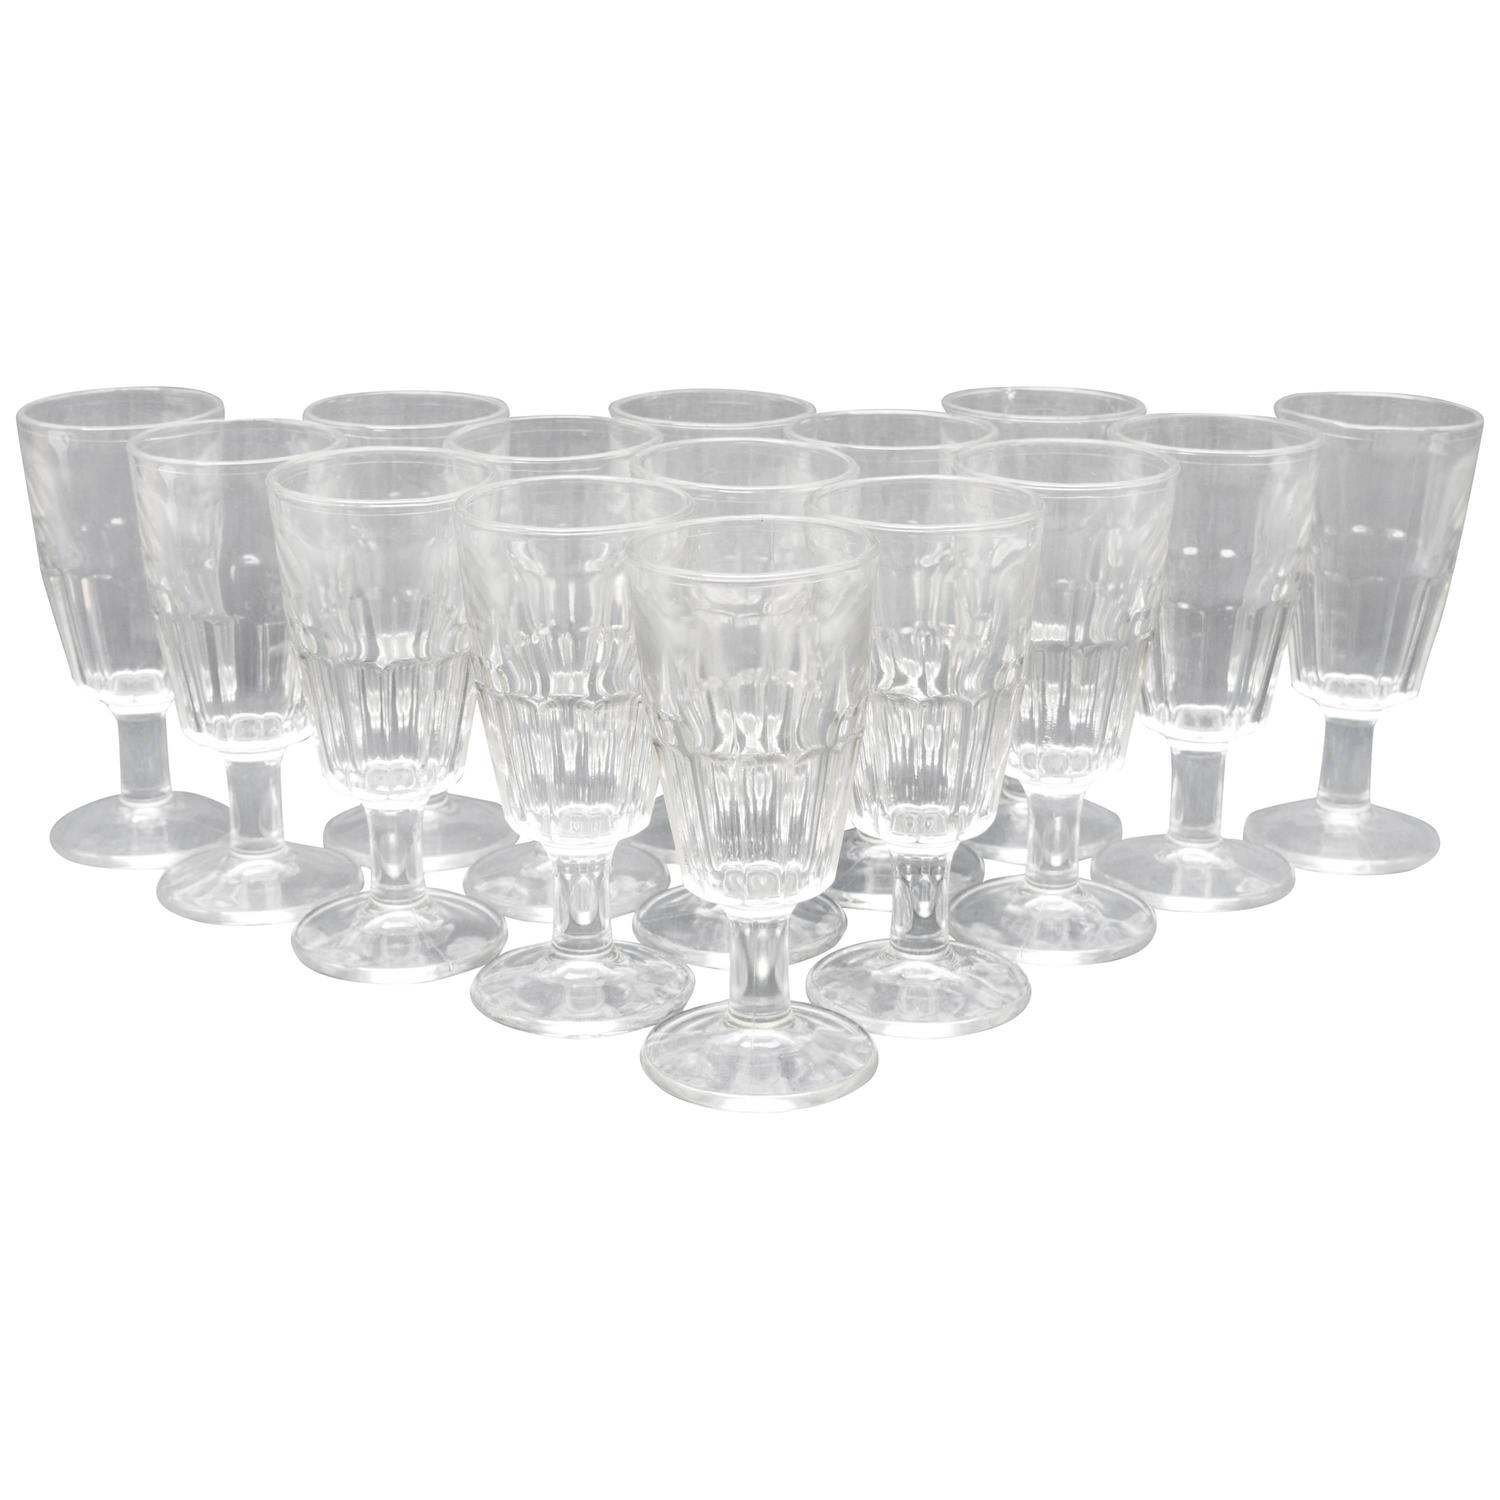 Set Of 16 French Absinthe Form Bistro Glasses For Sale At 1stdibs